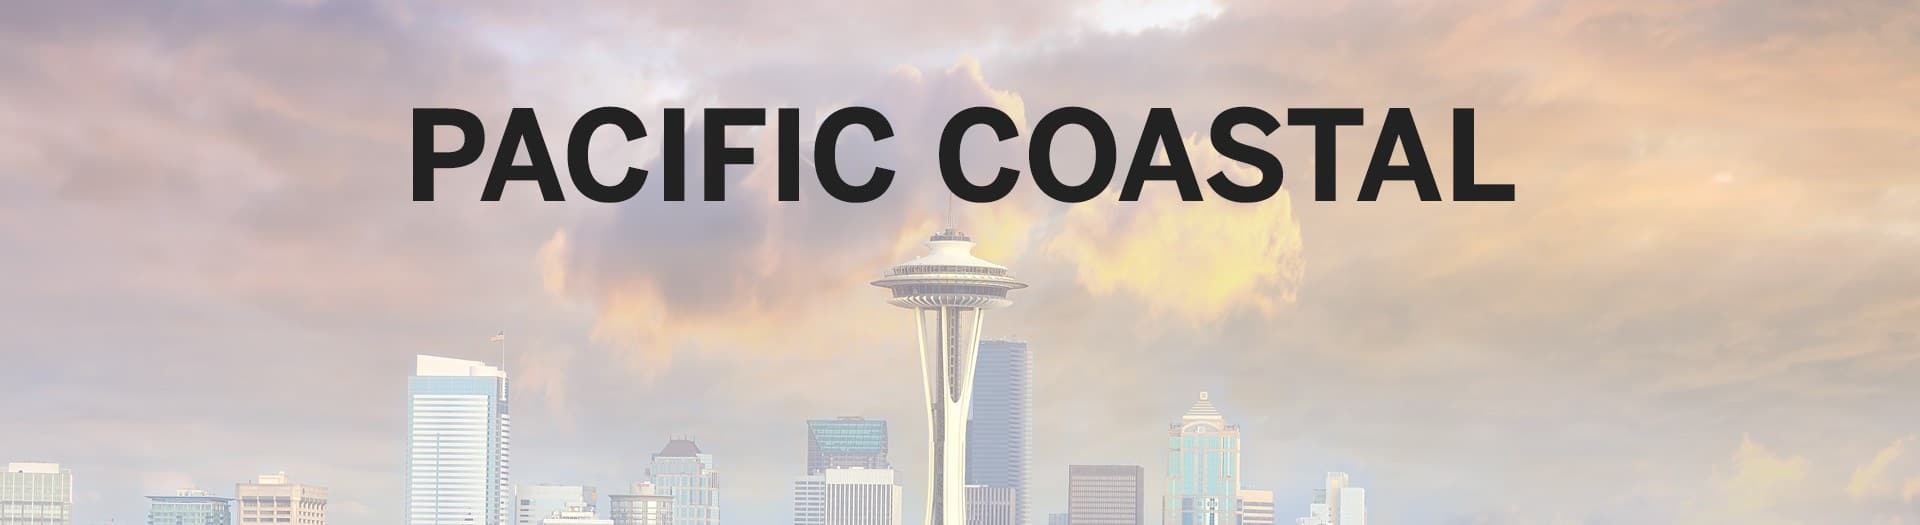 Ultra Luxury Pacific Coastal Cruises Pacific Coastal Waterways